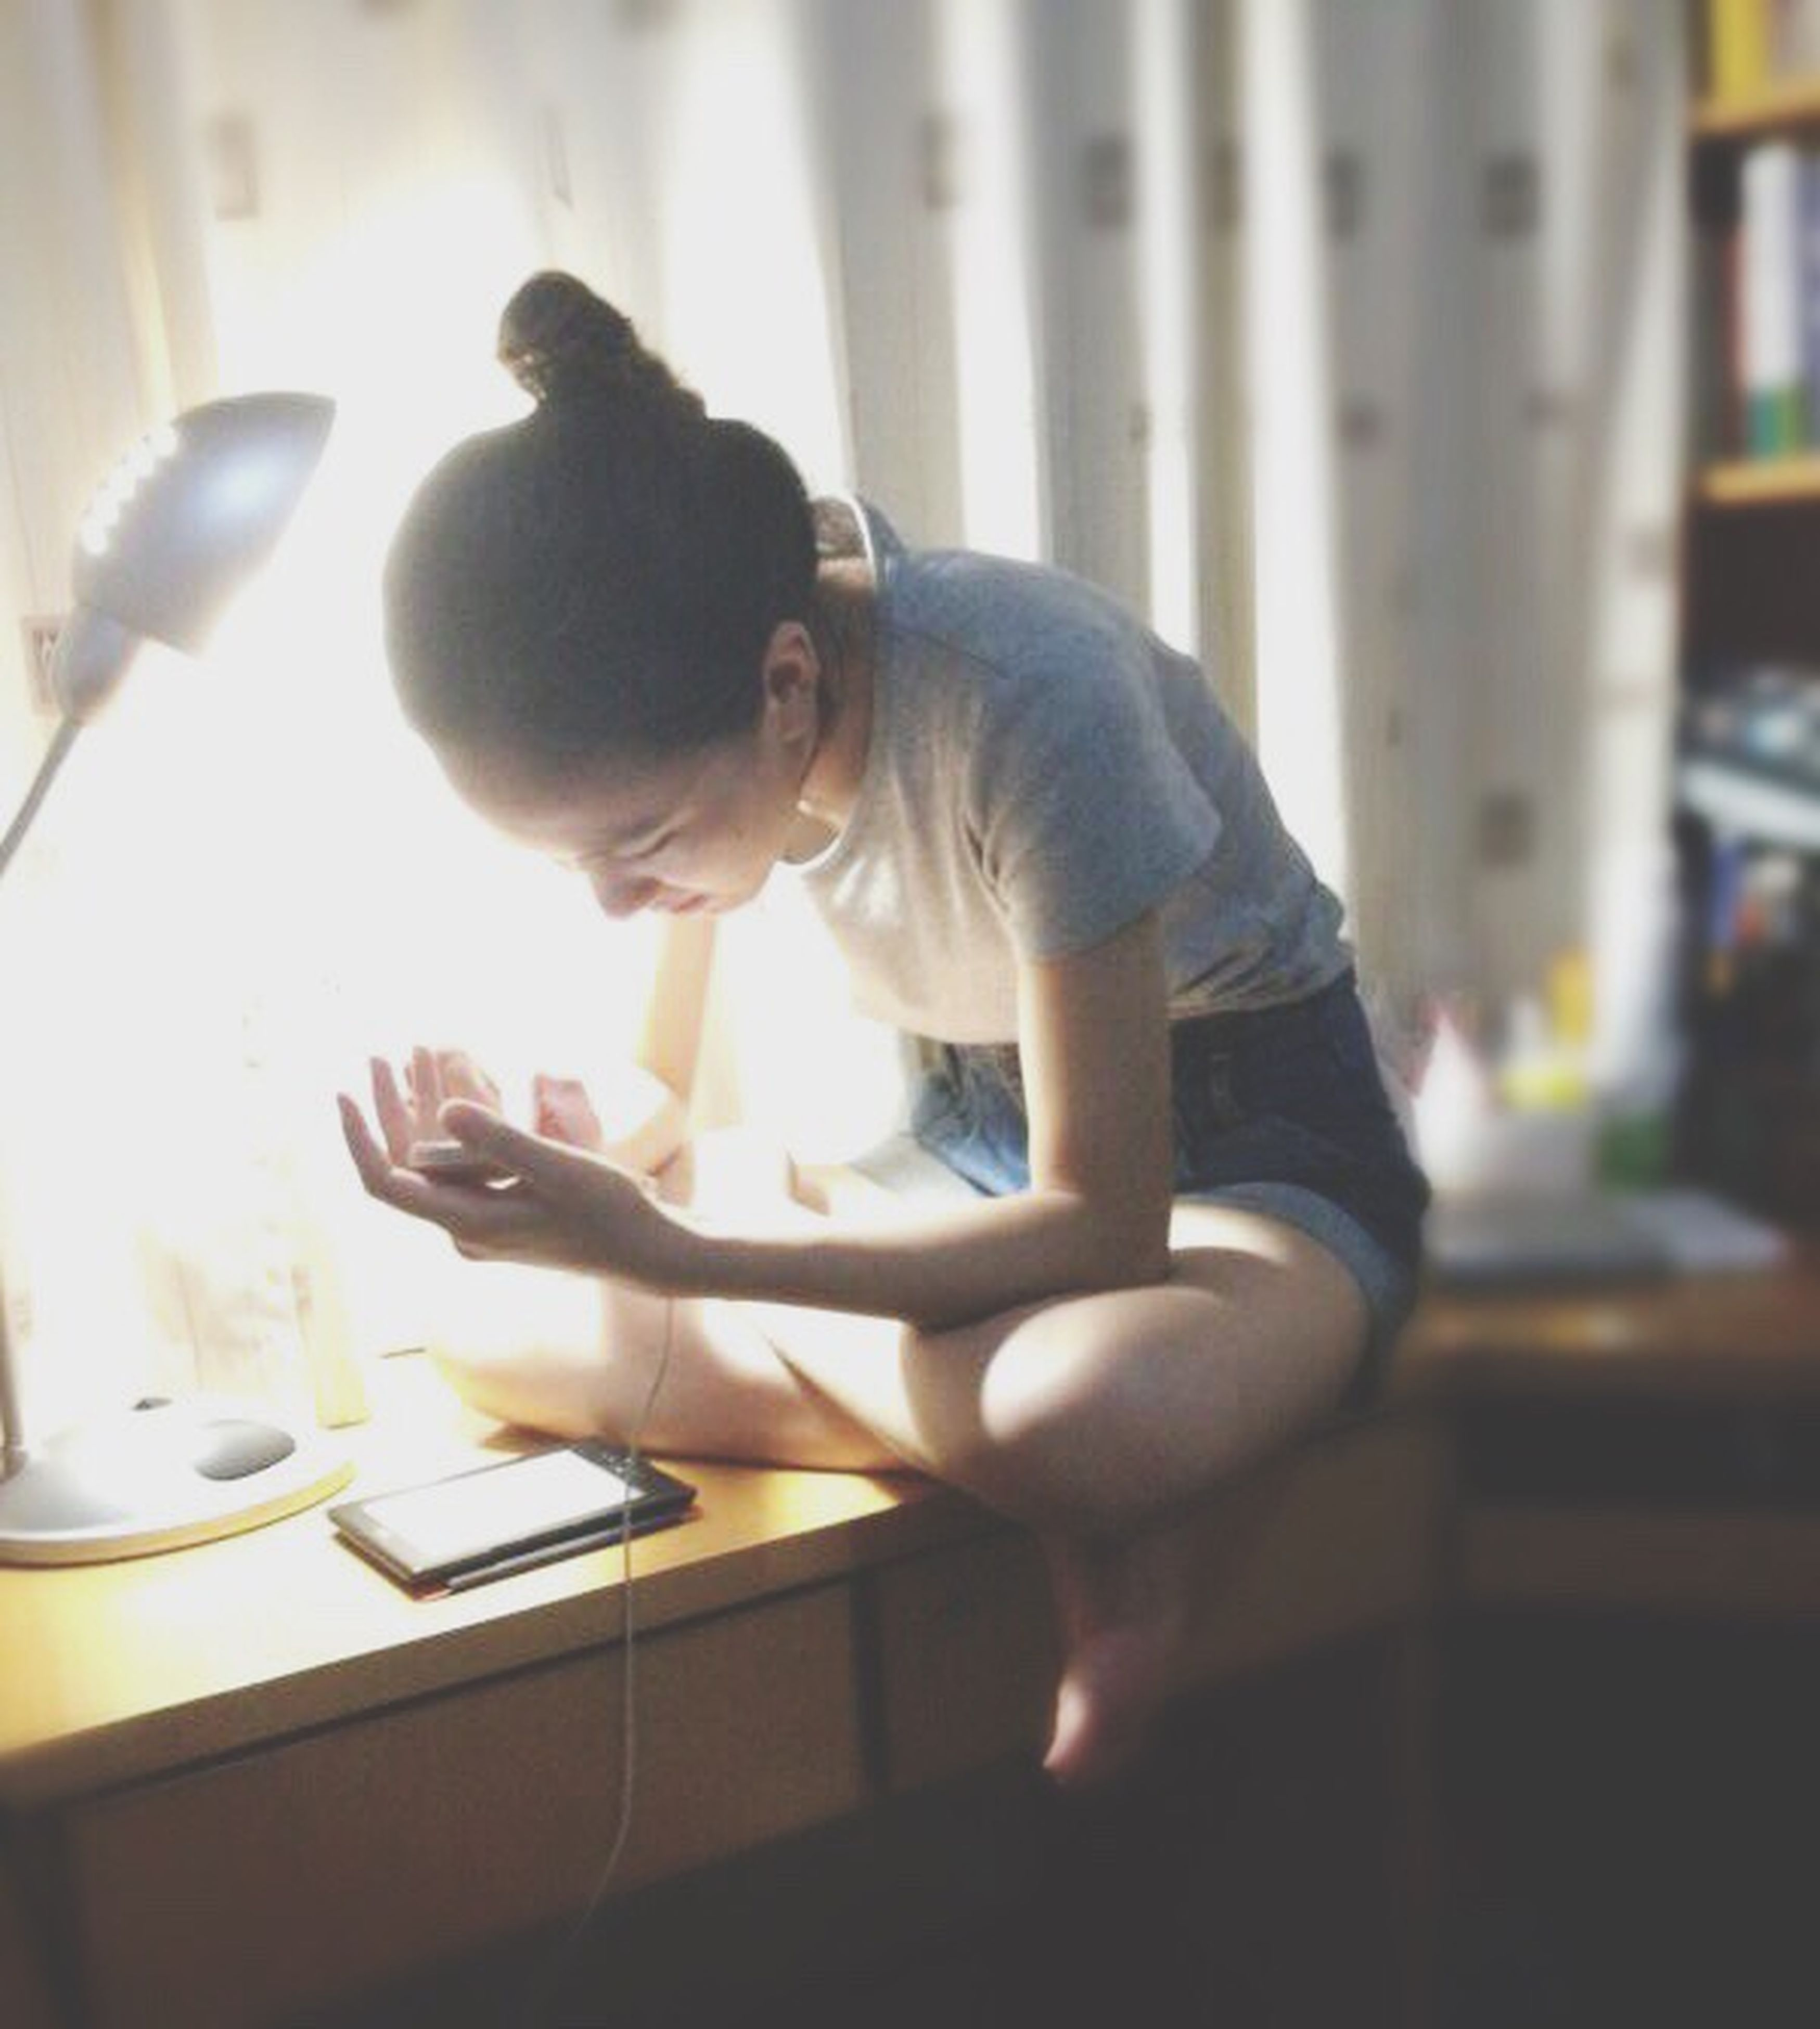 indoors, childhood, home interior, sitting, lifestyles, leisure activity, person, elementary age, table, girls, illuminated, playing, glass - material, home, casual clothing, domestic room, window, holding